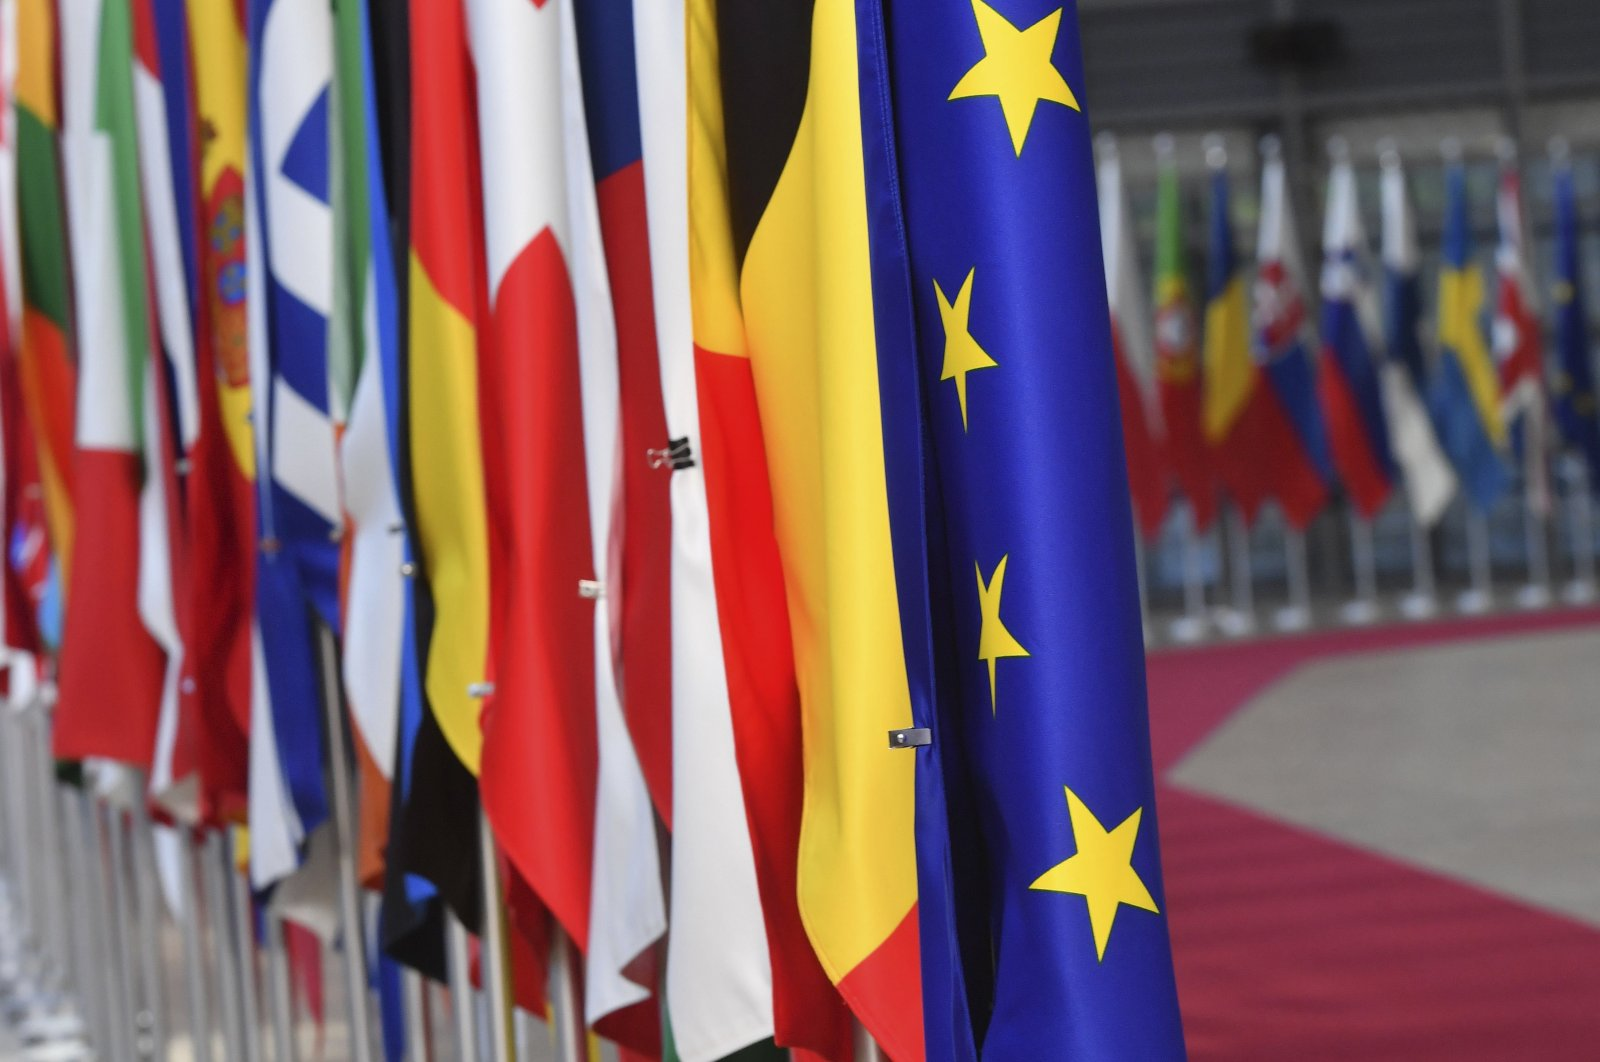 The European Union flag is displayed with EU member countries' flags at the European Council in Brussels, May 13, 2019. (AFP Photo)